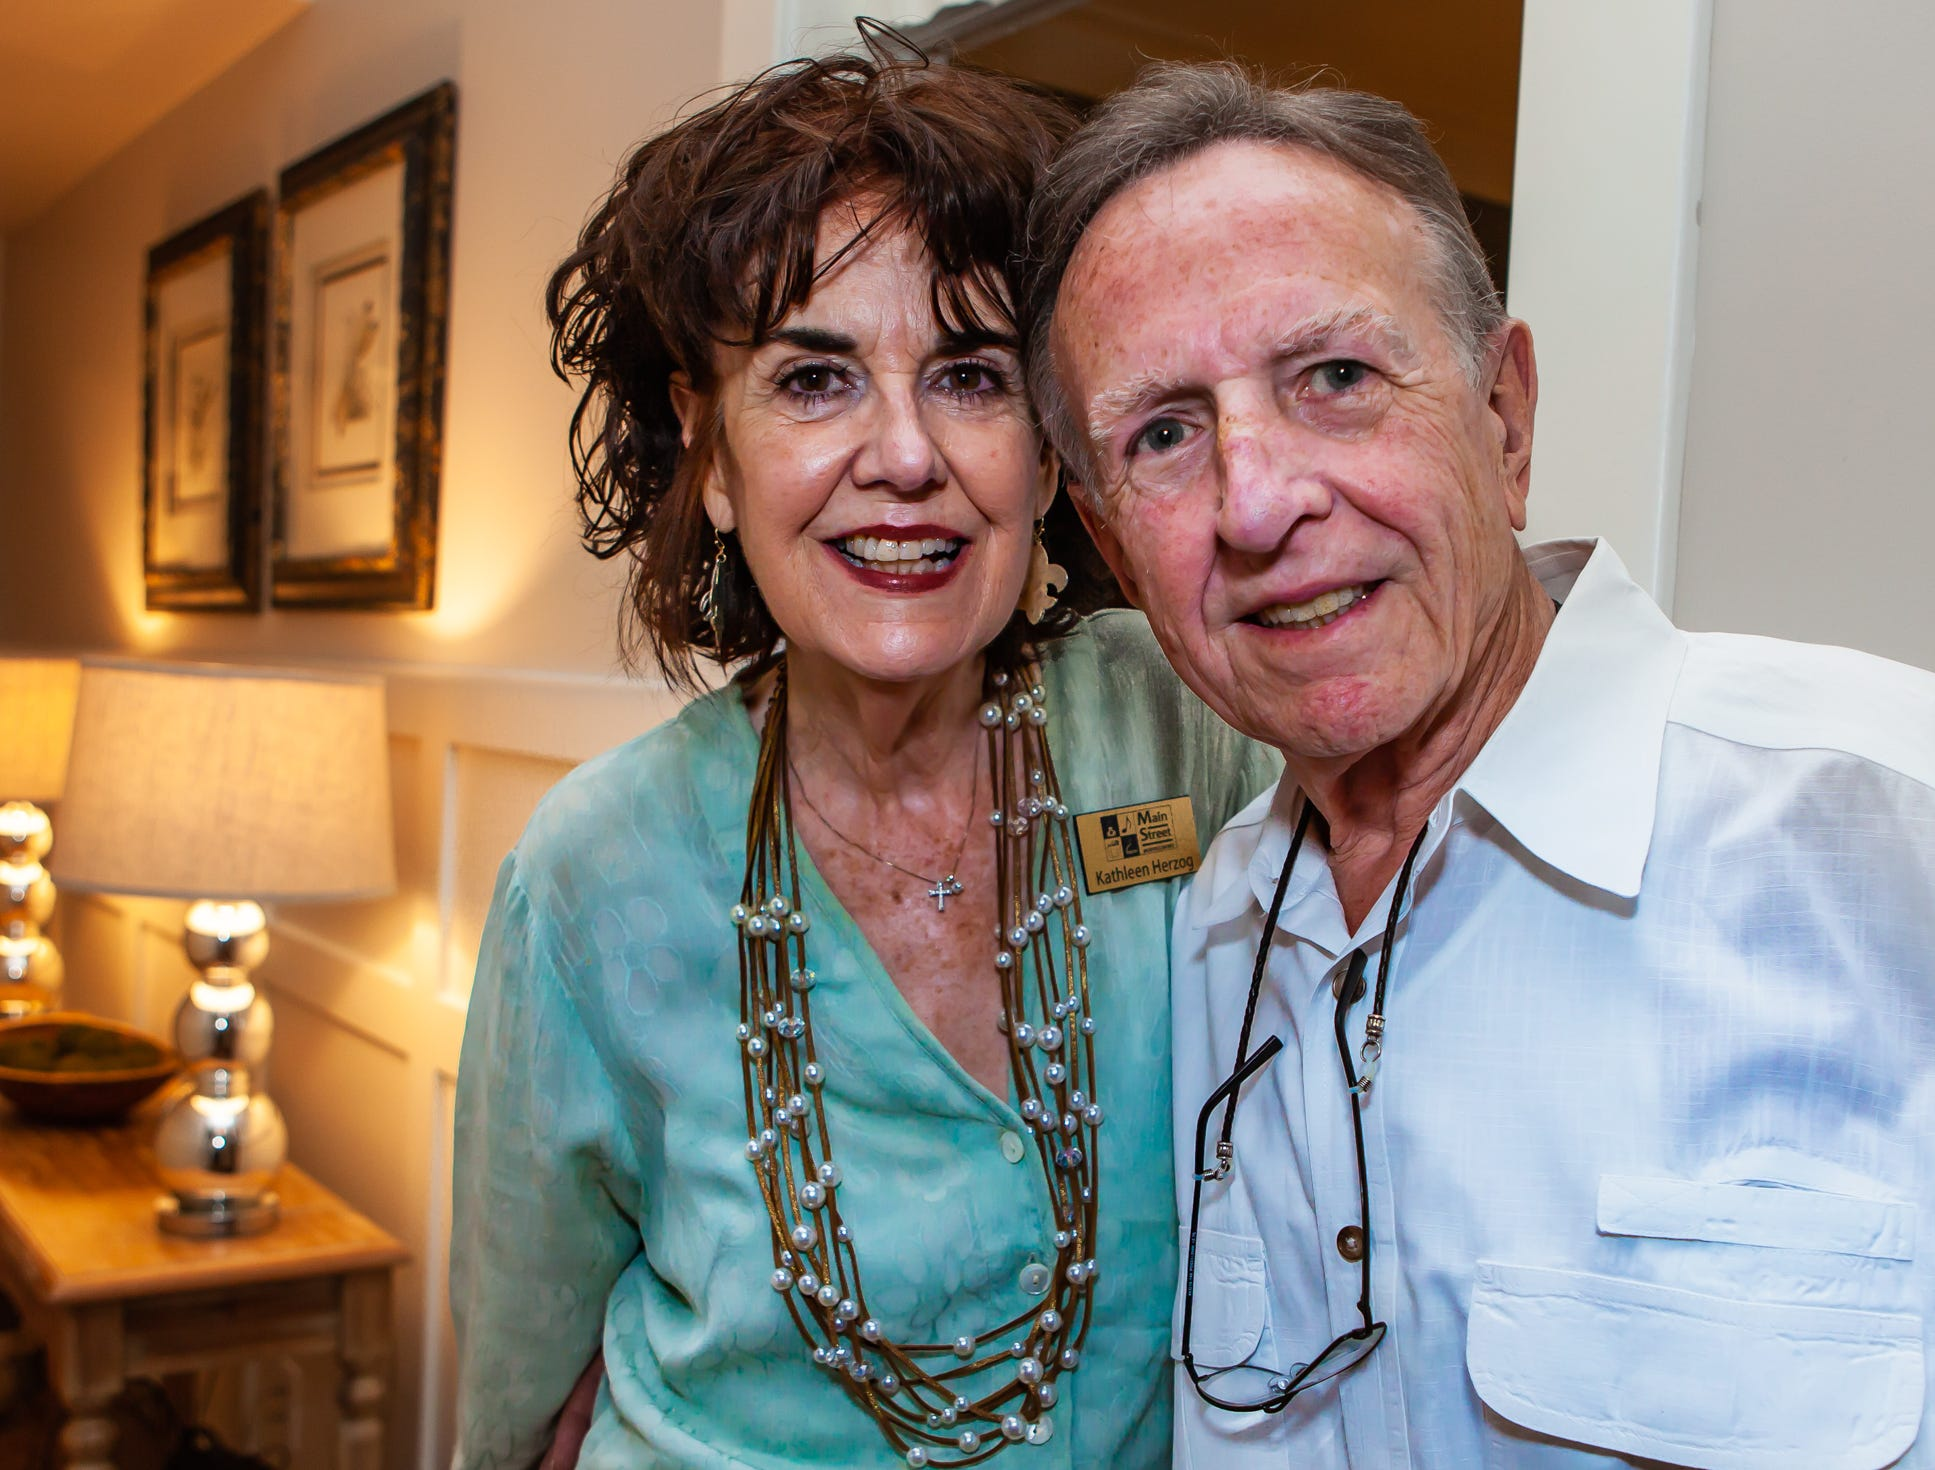 Kathleen Herzog and Mac McCord at An Evening on Lytle, hosted by Main Street Murfreesboro/Rutherford County. The event was held at the home of Rick and Amy Cottle.